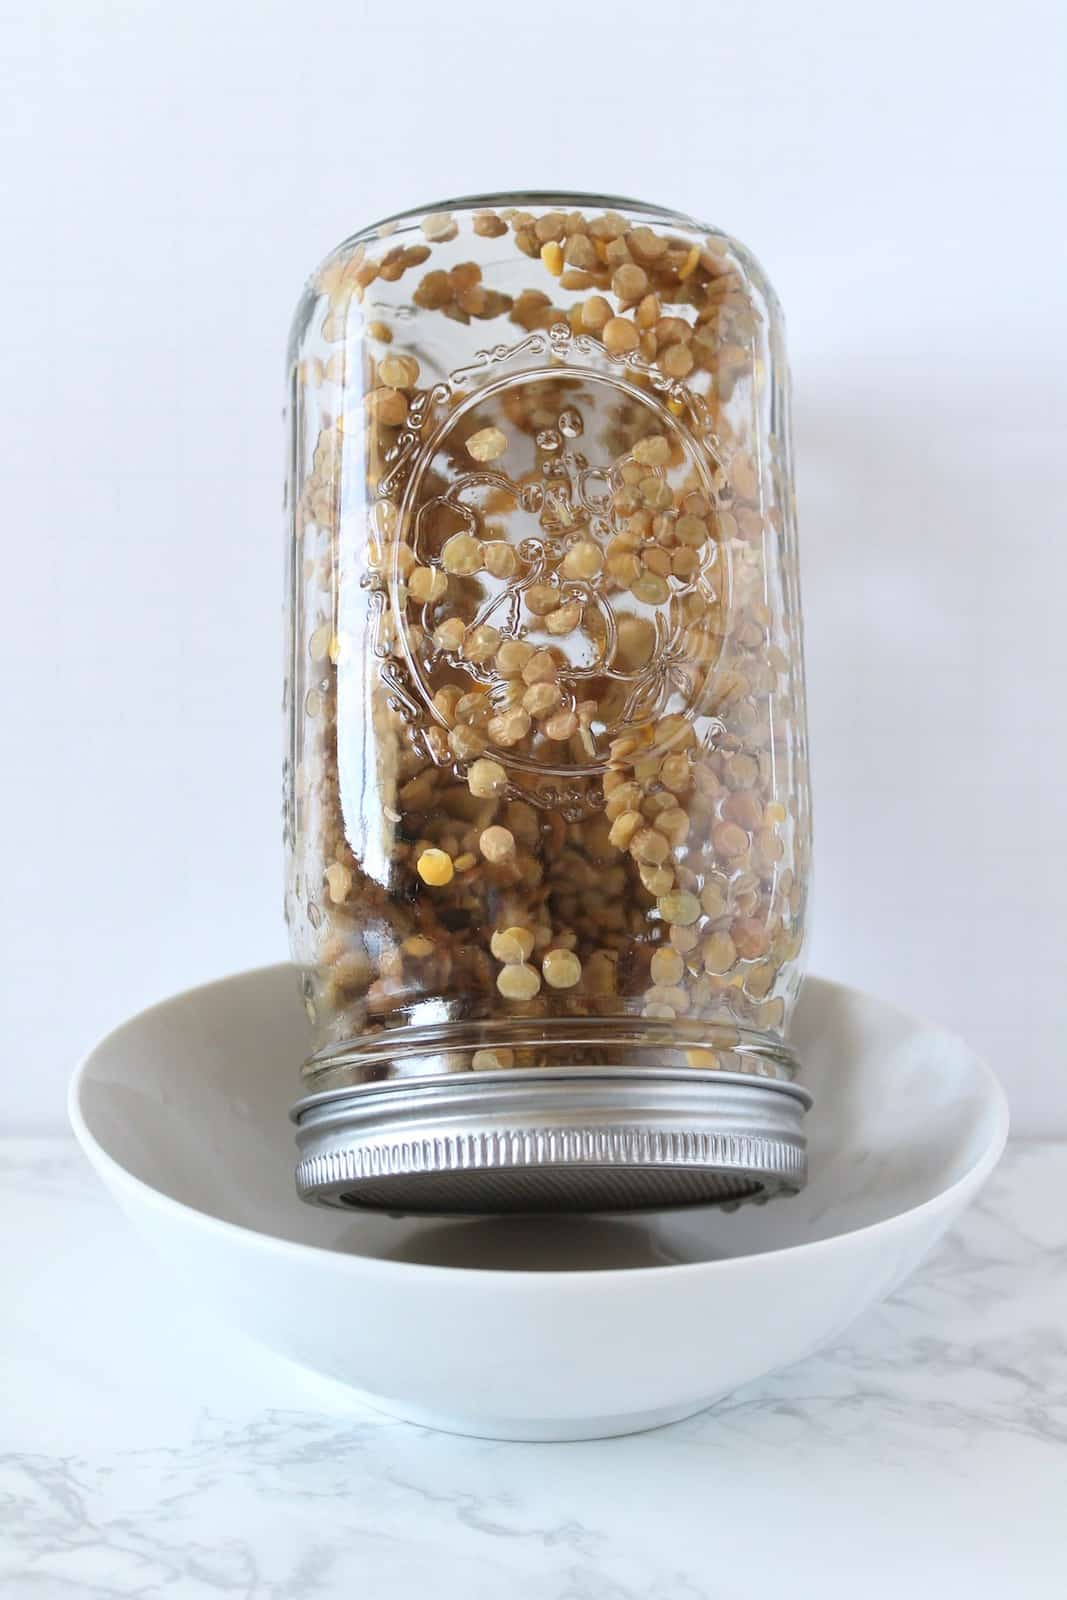 Upside down mason jar filled with brown lentils with a sprouting lid on it resting in a white bowl